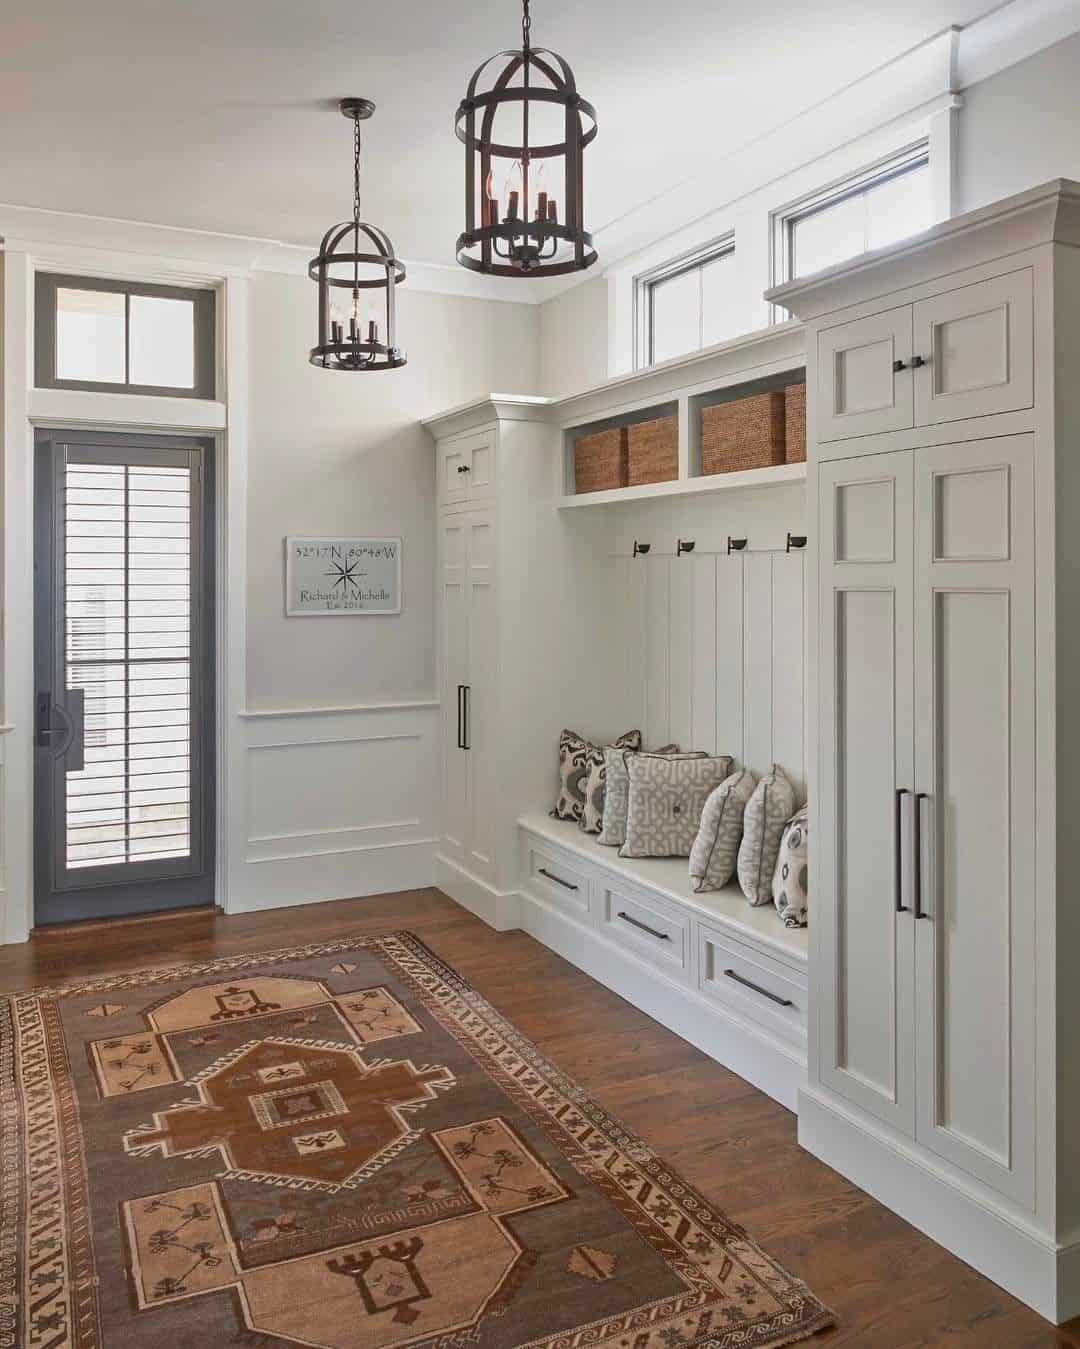 Wondrous Stylish Mudroom Decor Ideas Caraccident5 Cool Chair Designs And Ideas Caraccident5Info